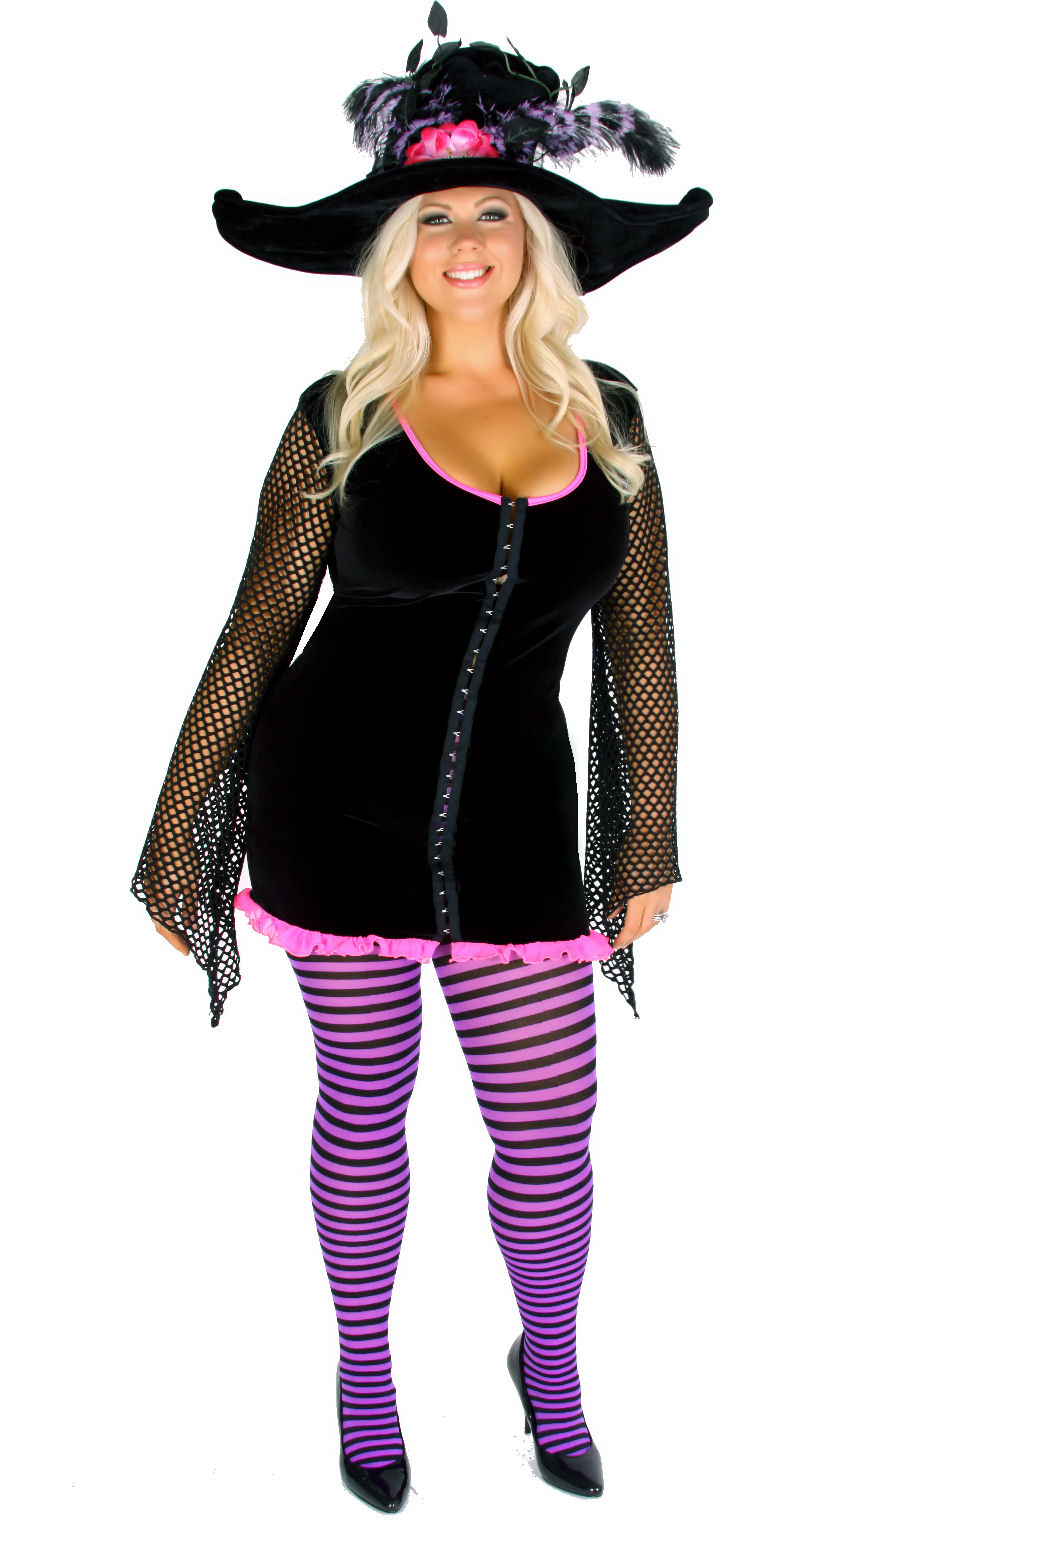 New Plus Size Halloween Costume Collection Unveiled by ...